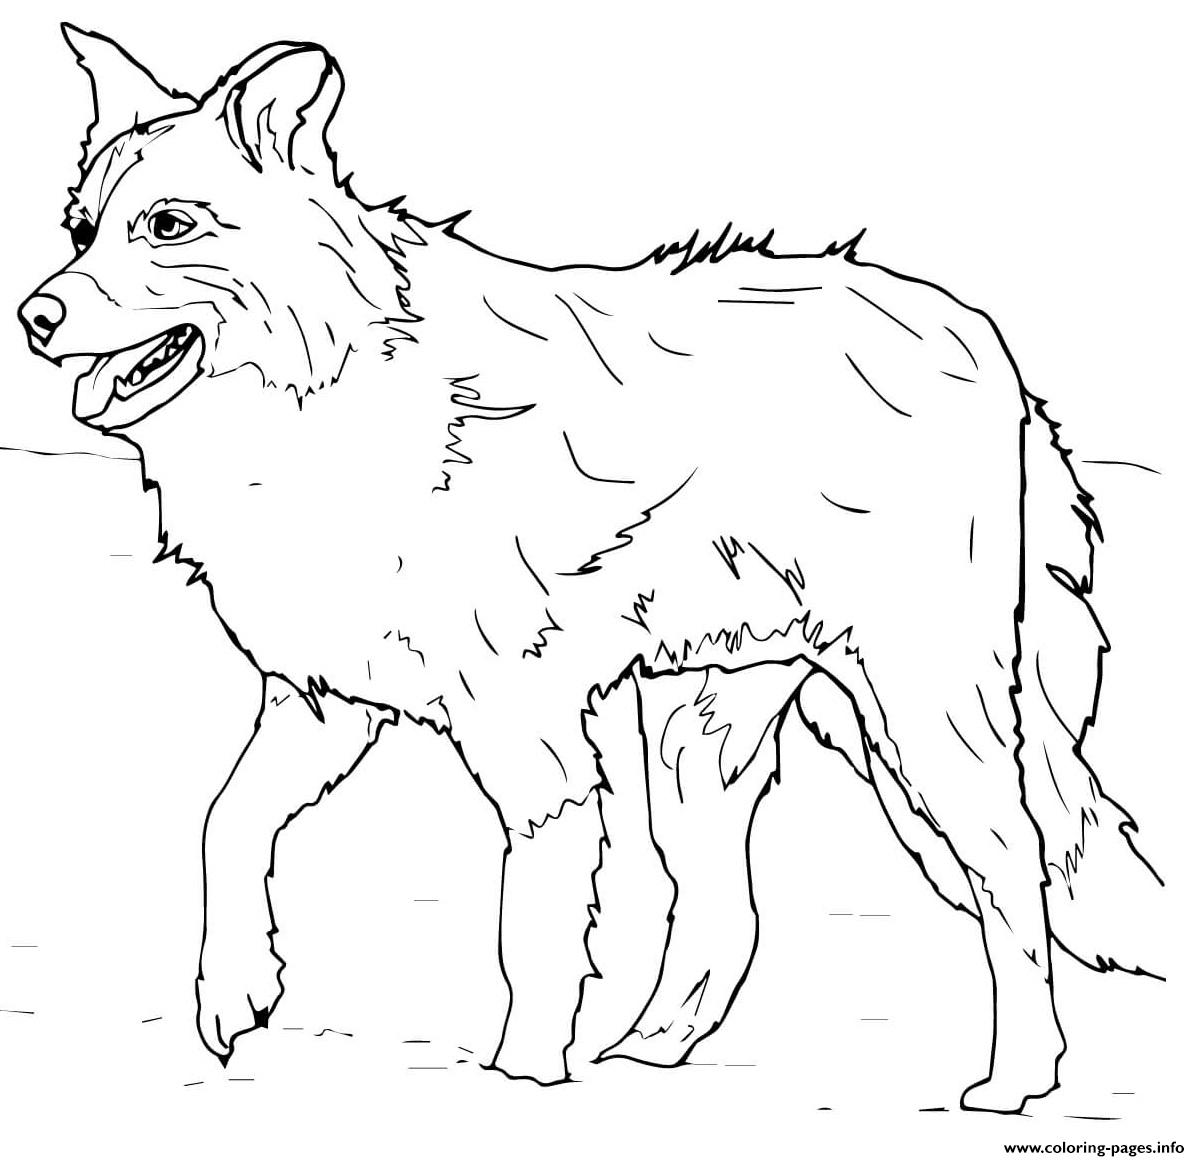 Scotch Sheep Dog Or Border Collie Coloring Pages Printable